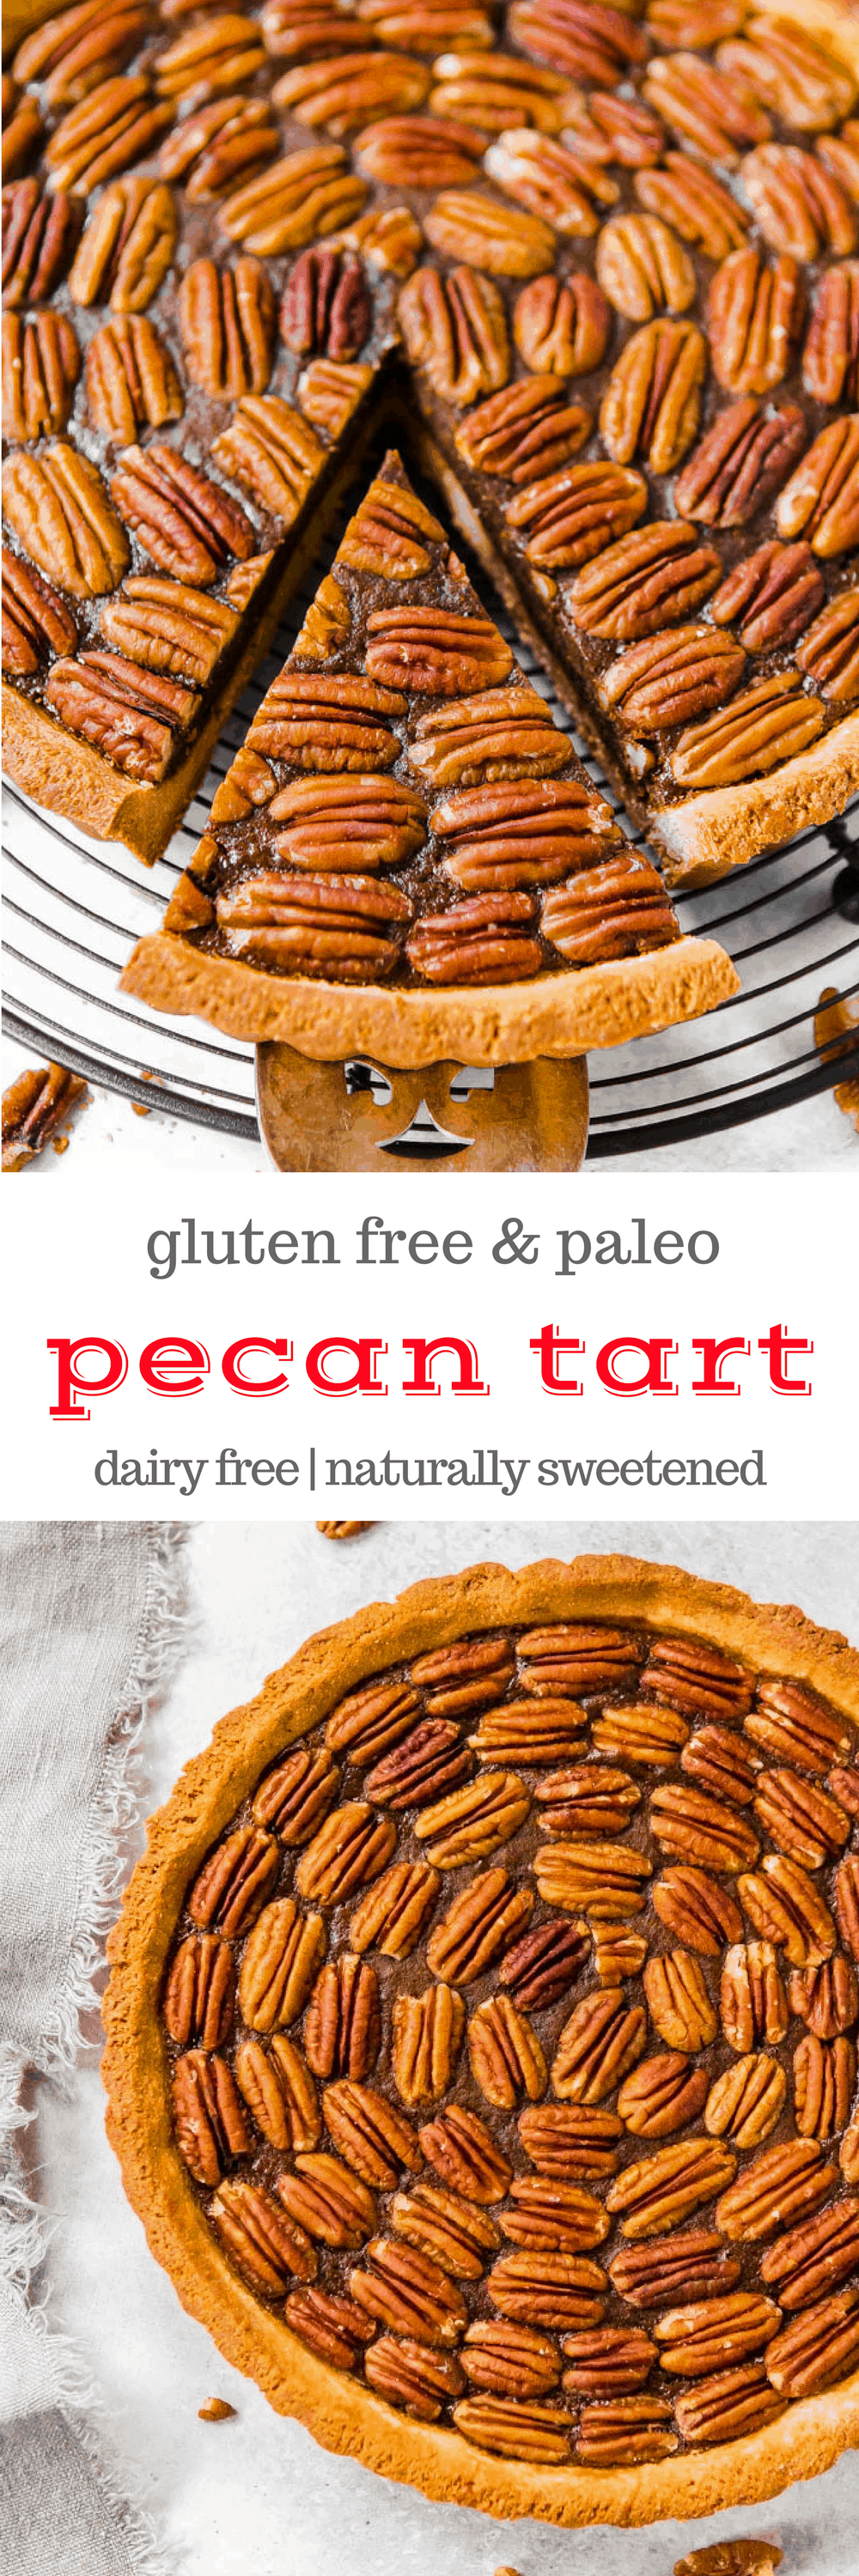 Gluten Free Pecan Tart is the perfect elegant #Thanksgiving or #Christmas #dessert! The delicious pastry is a cousin on the favorite pecan pie, and this #recipe is #glutenfree #paleo #dairyfree and #naturallysweetened